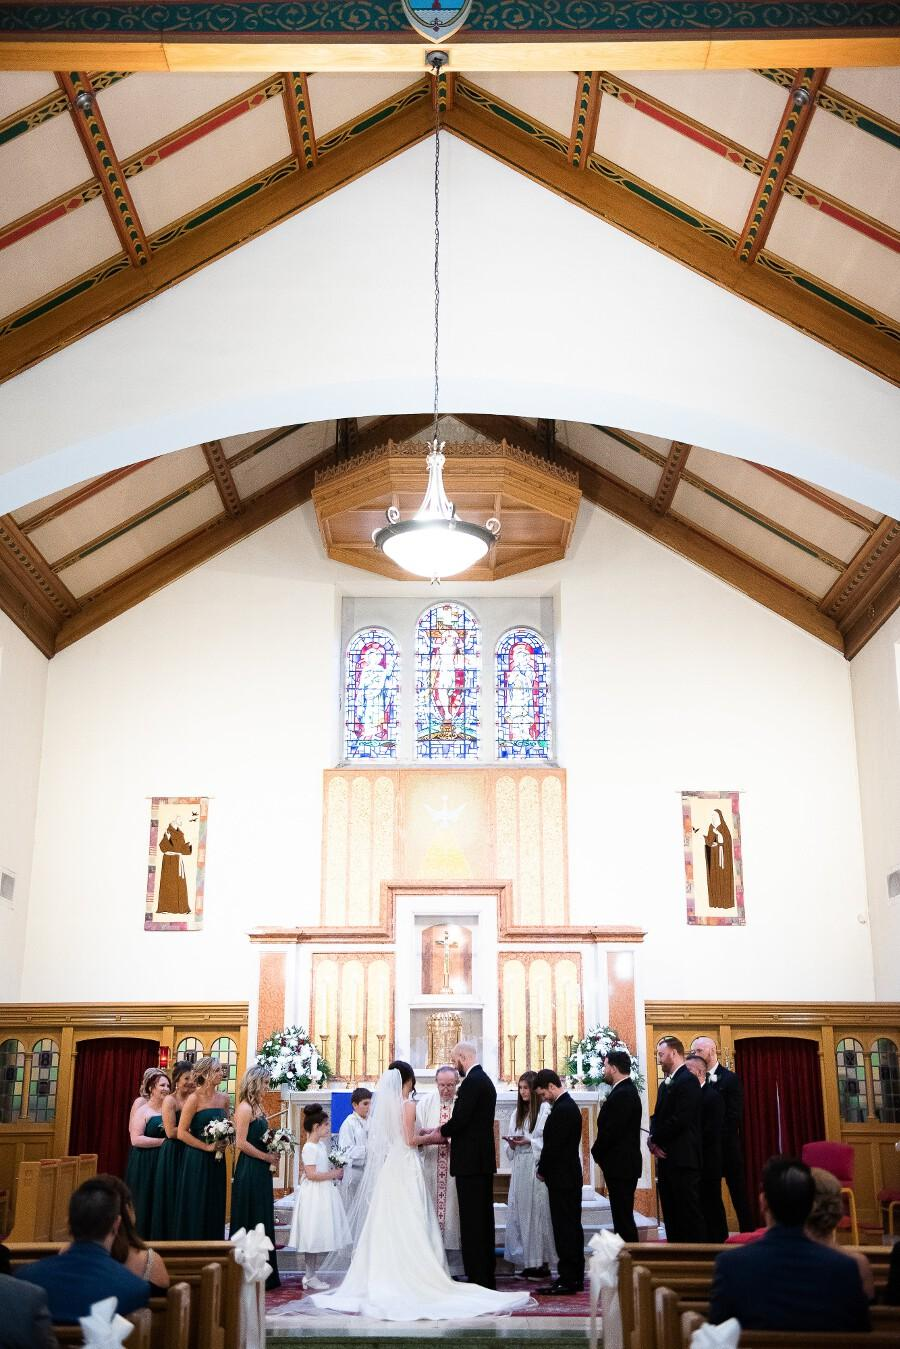 Bride and groom stand on the altar at church with priest and bridal party